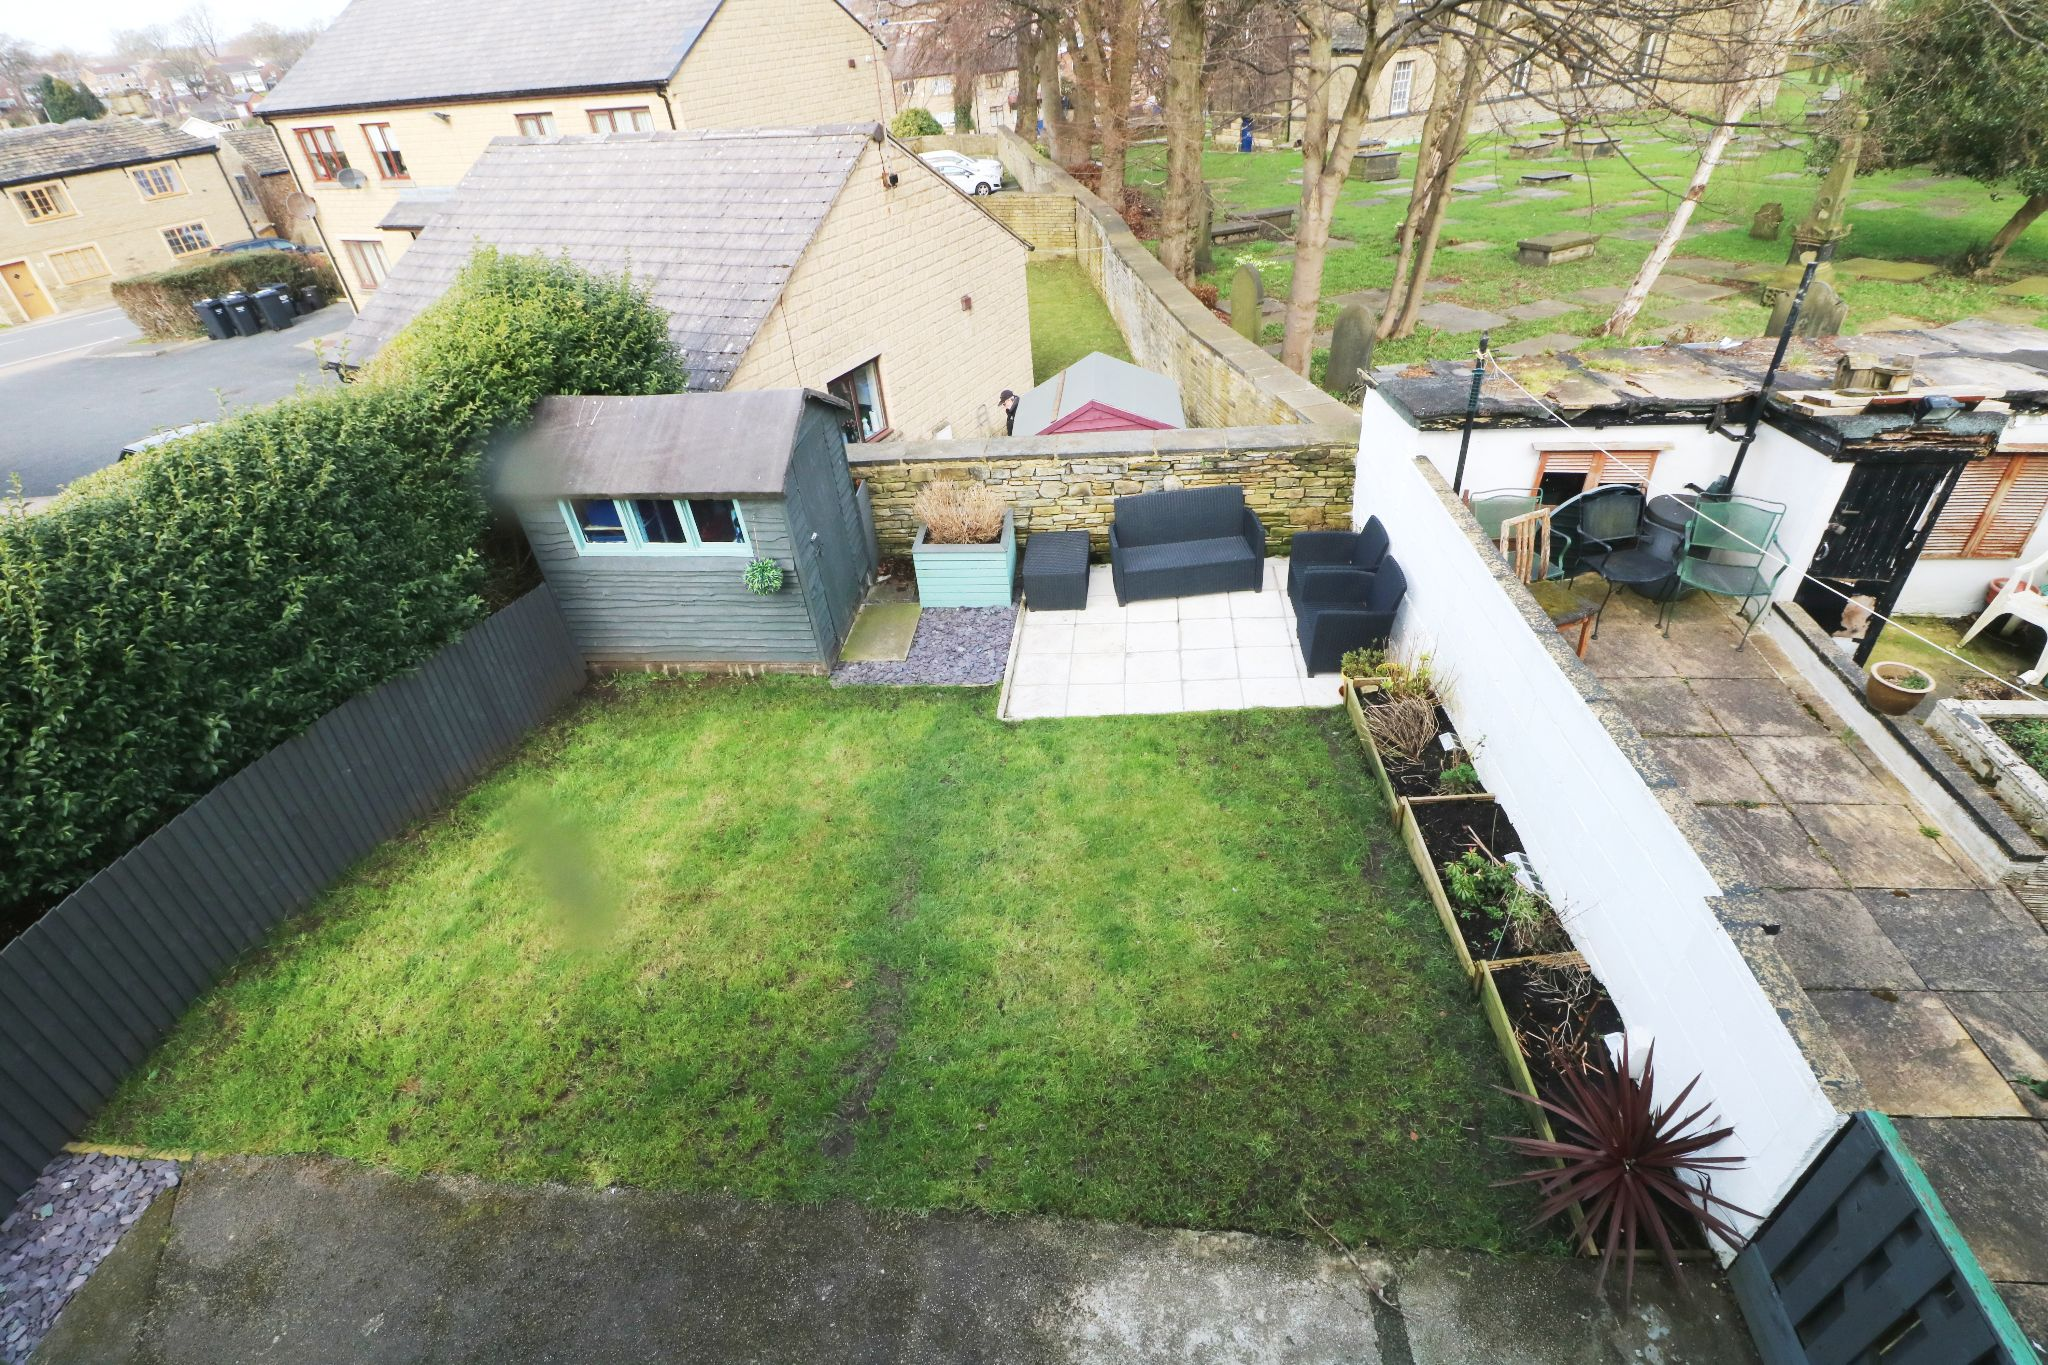 2 Bedroom End Terraced House For Sale - Photograph 13